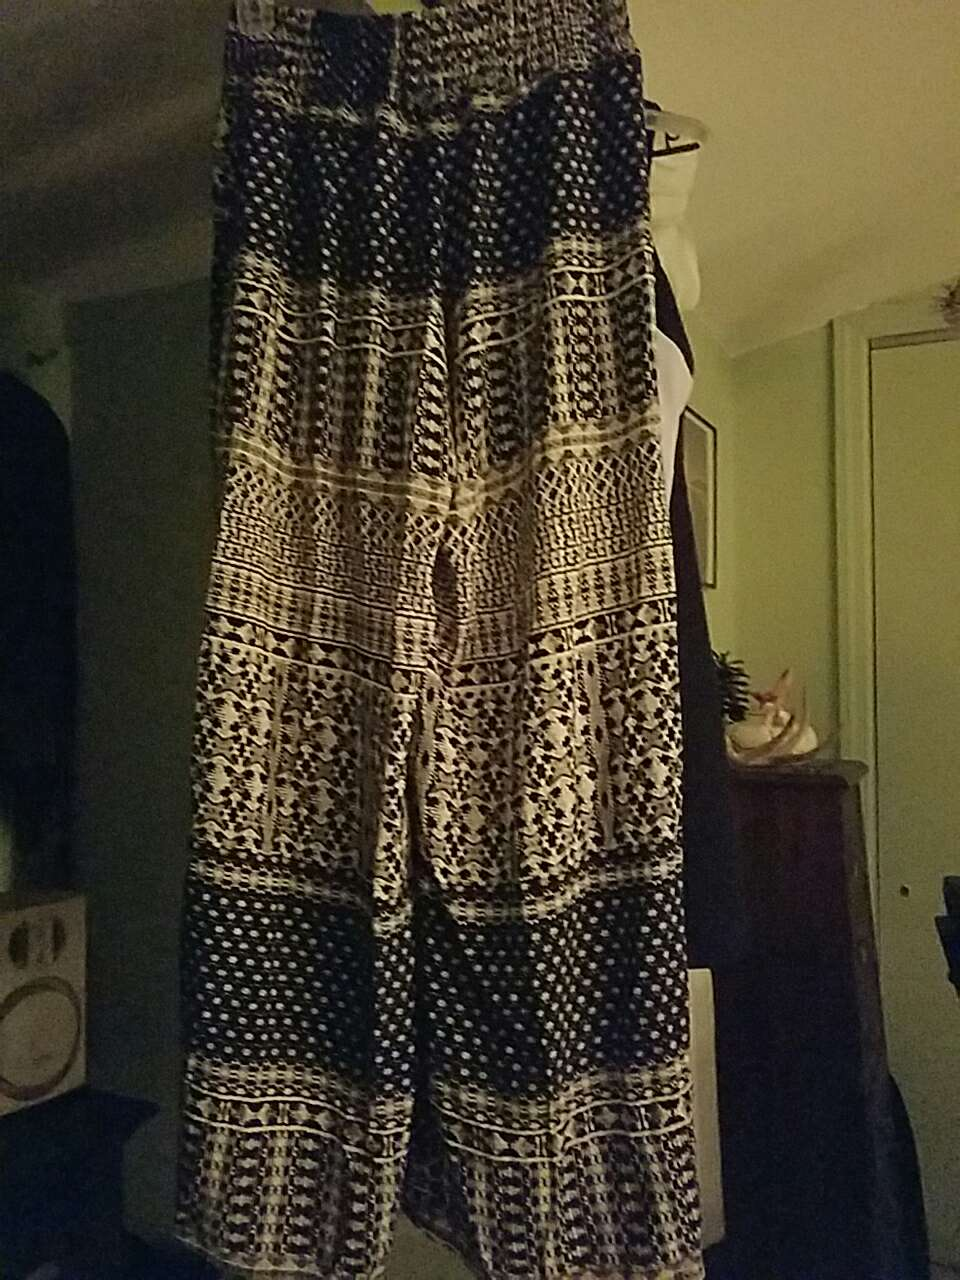 Used crib for sale in nj - Women S Black Tan Tribal Print Pants